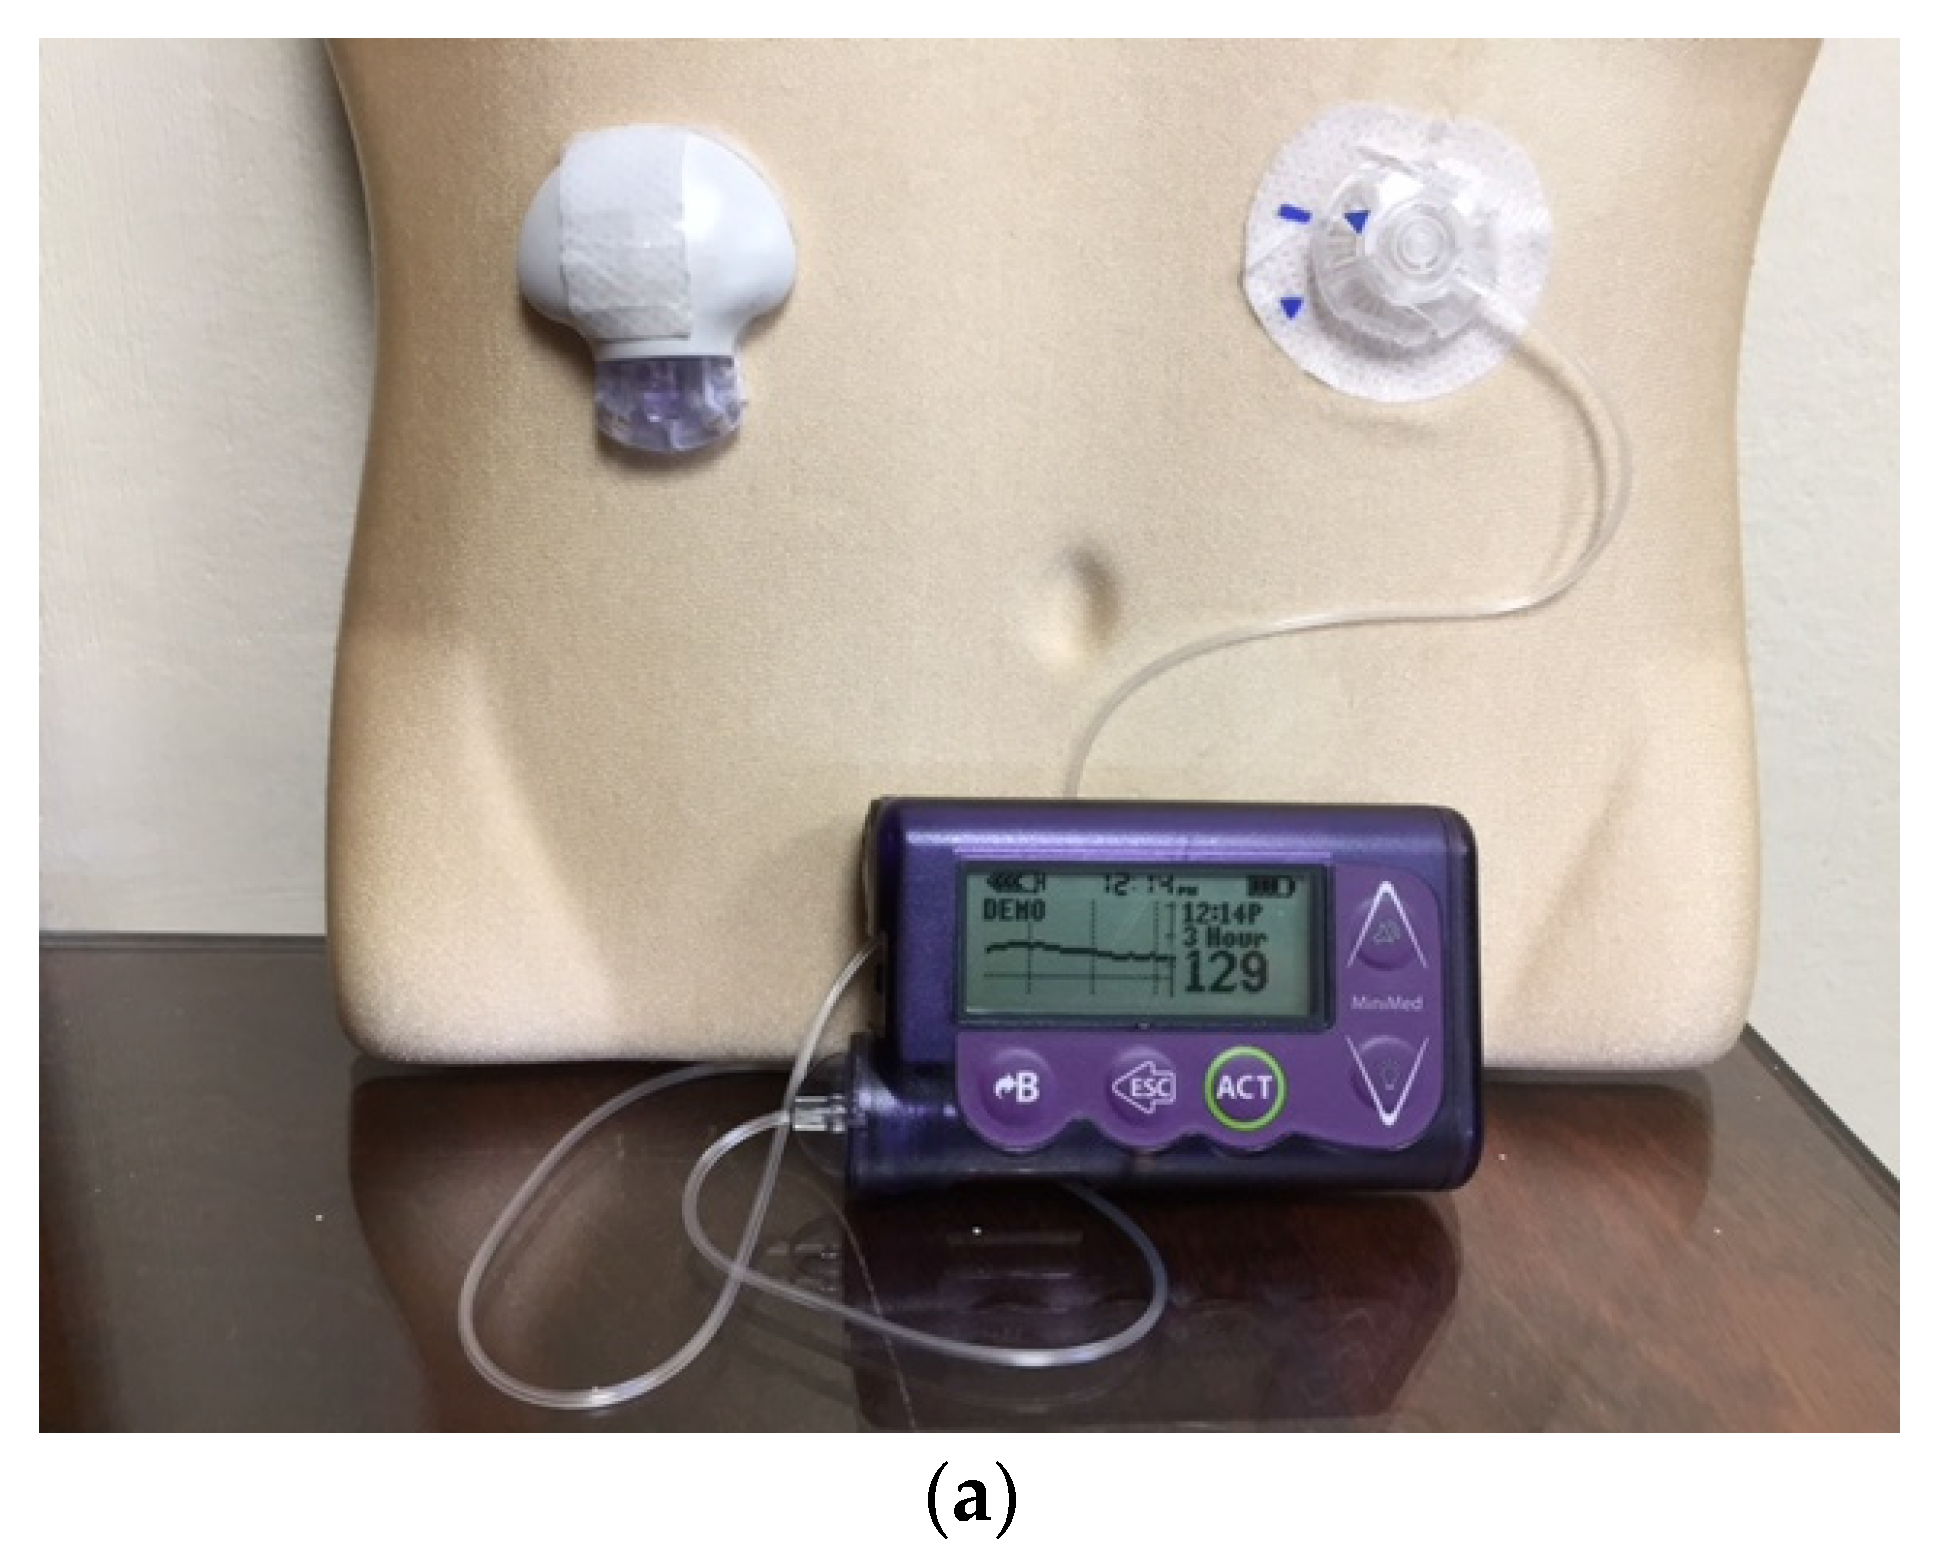 JCM | Free Full-Text | An Overview of Insulin Pumps and